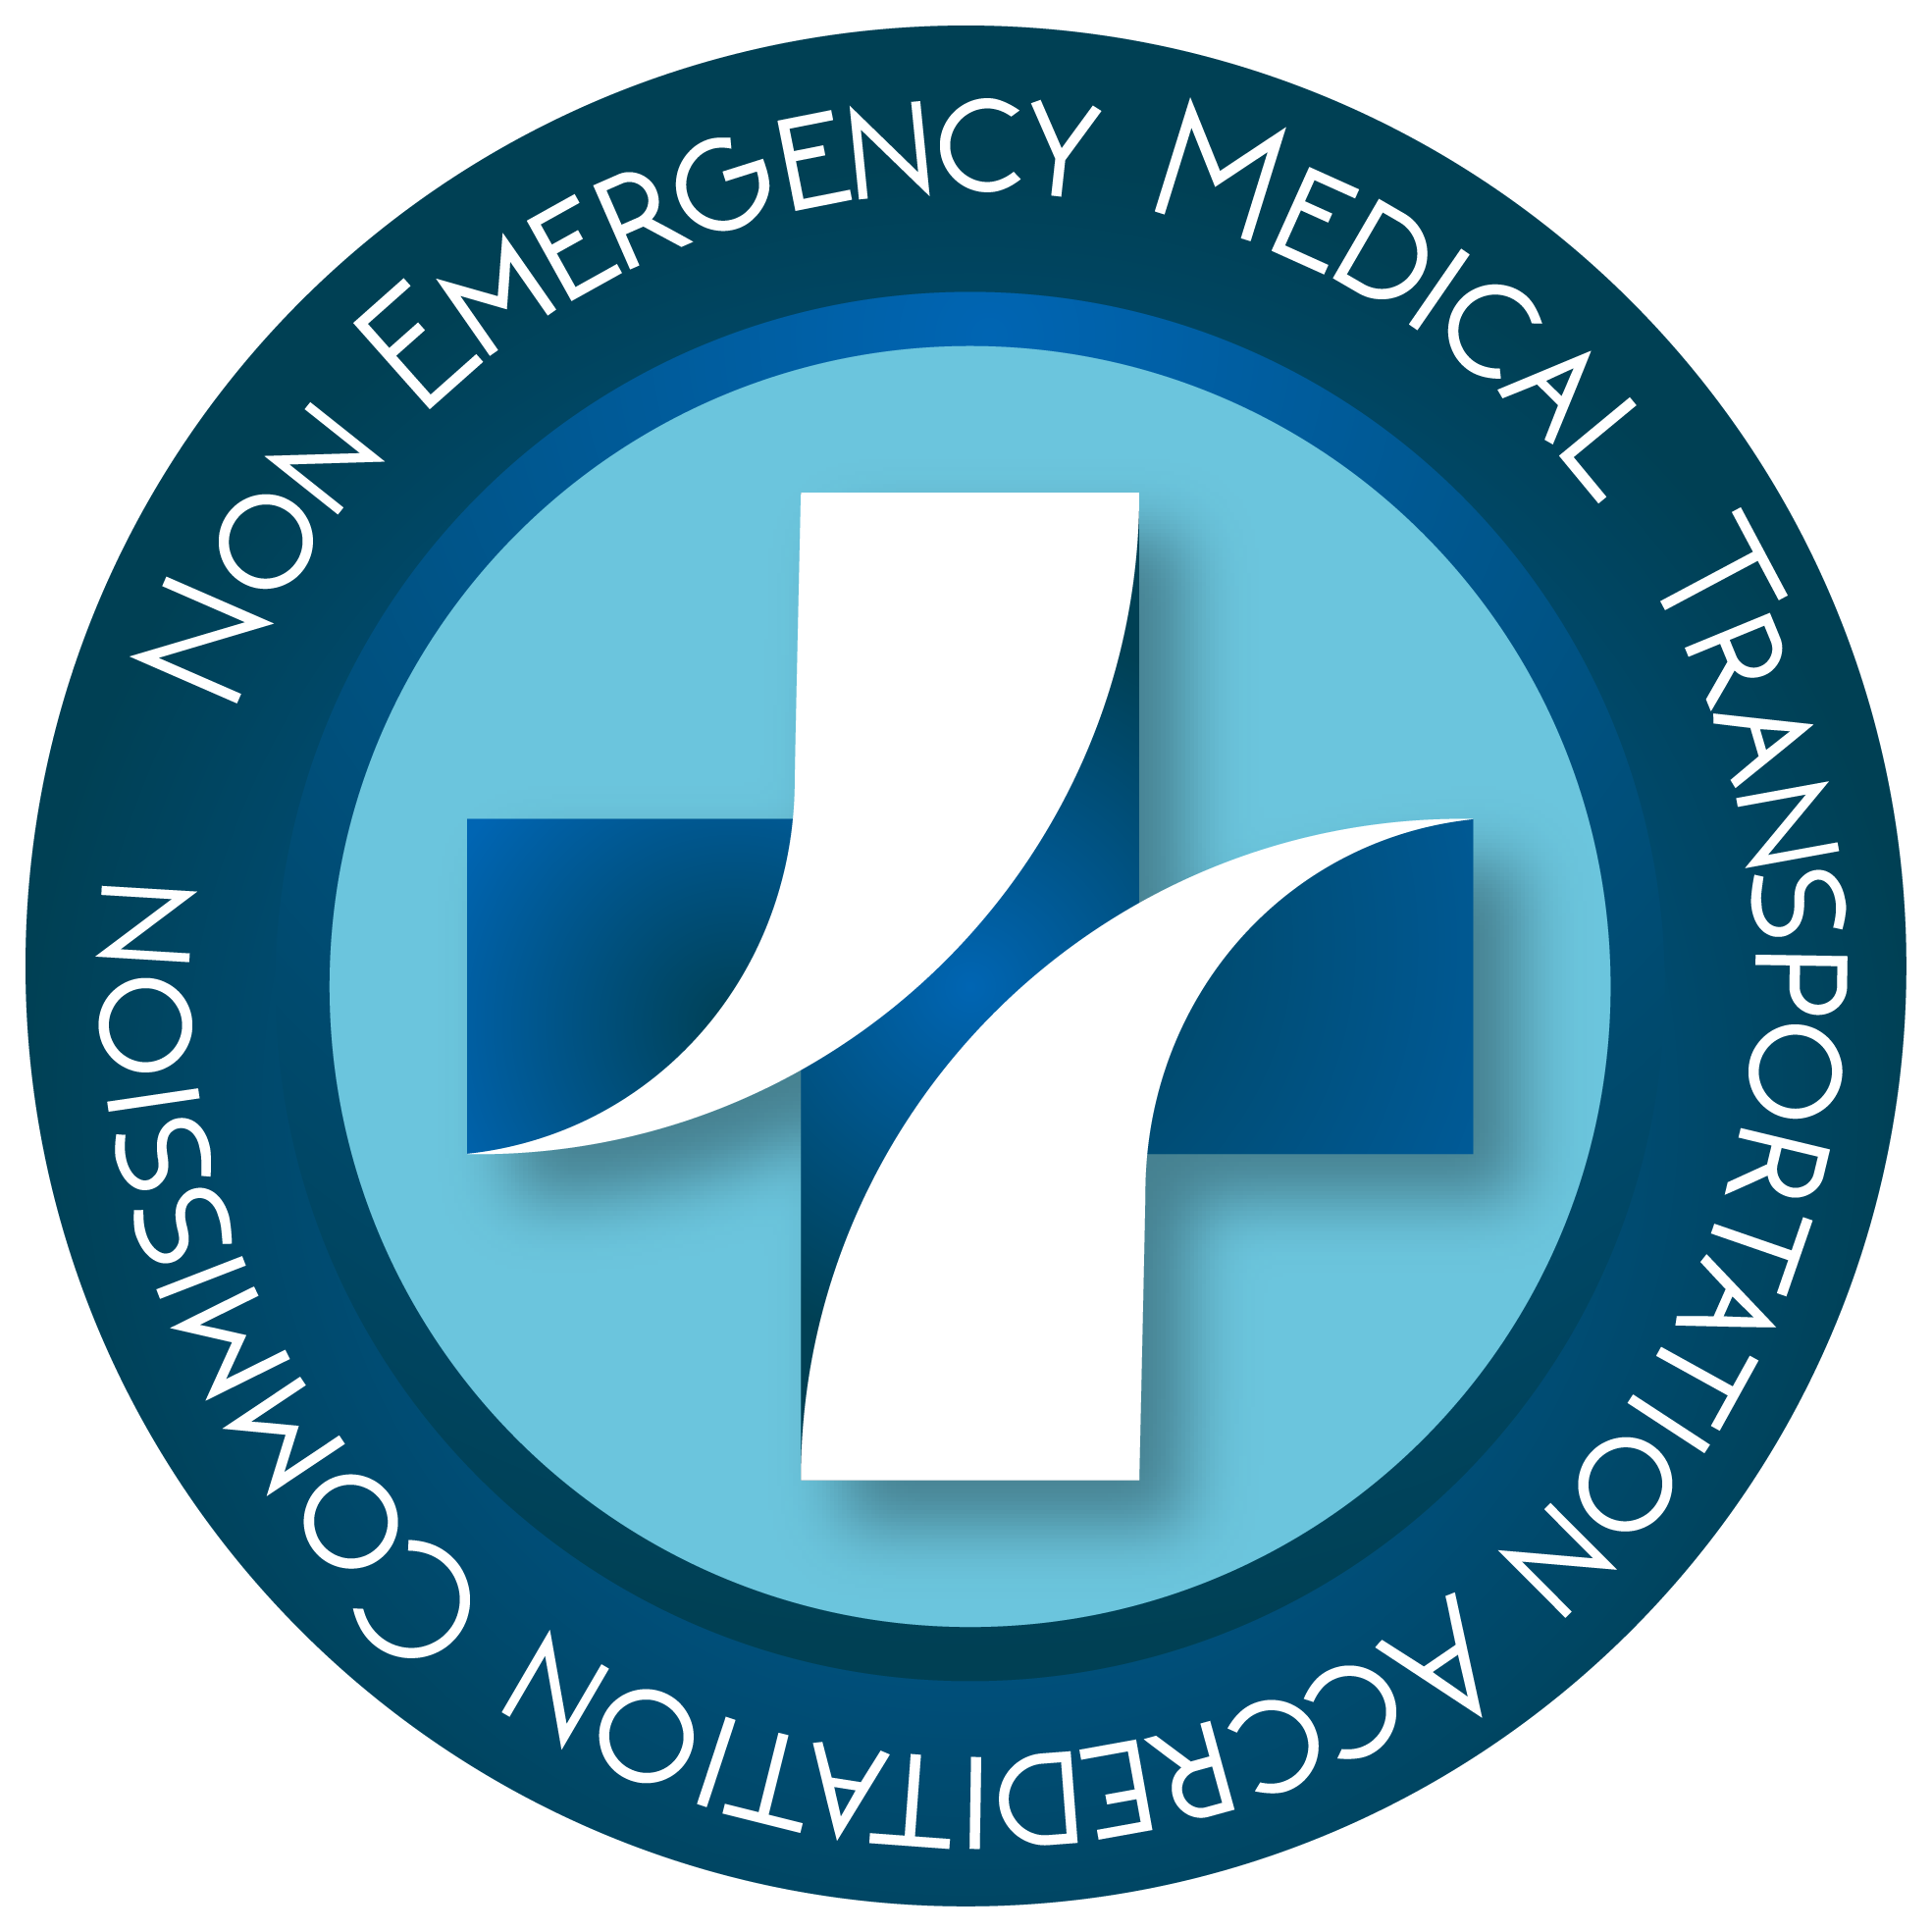 Non Emergency Medical Transportation Accreditation Commission We